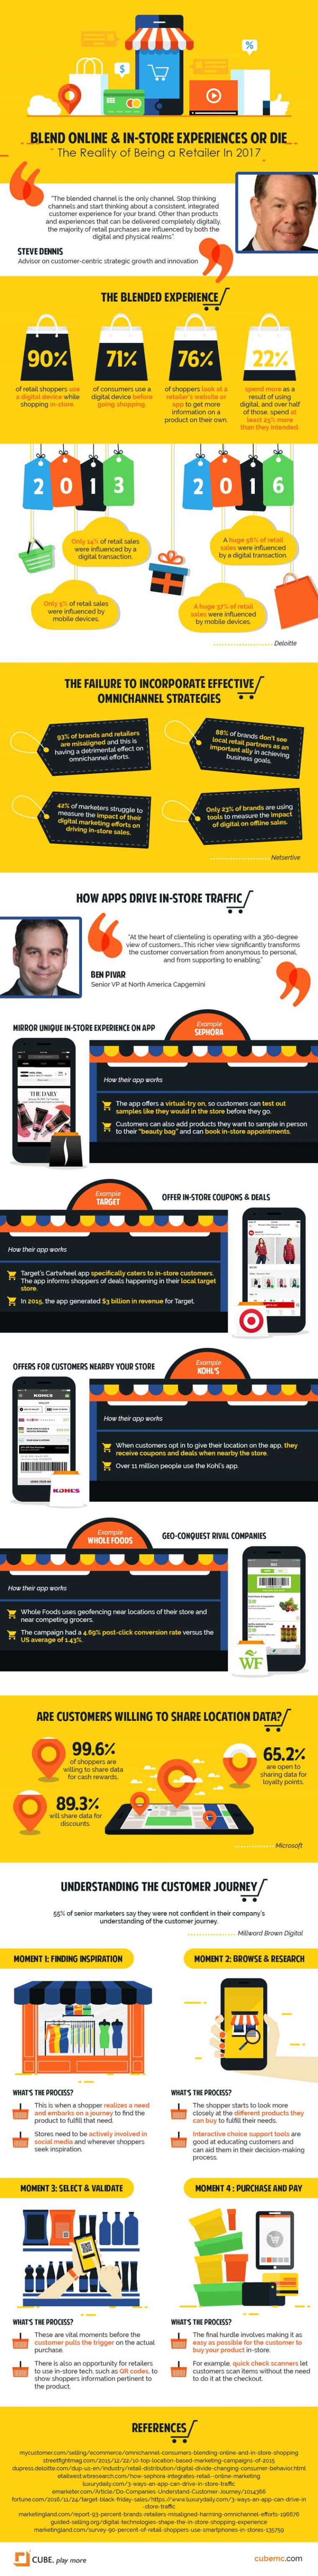 The reality of being a retailer in 2017 - infographic